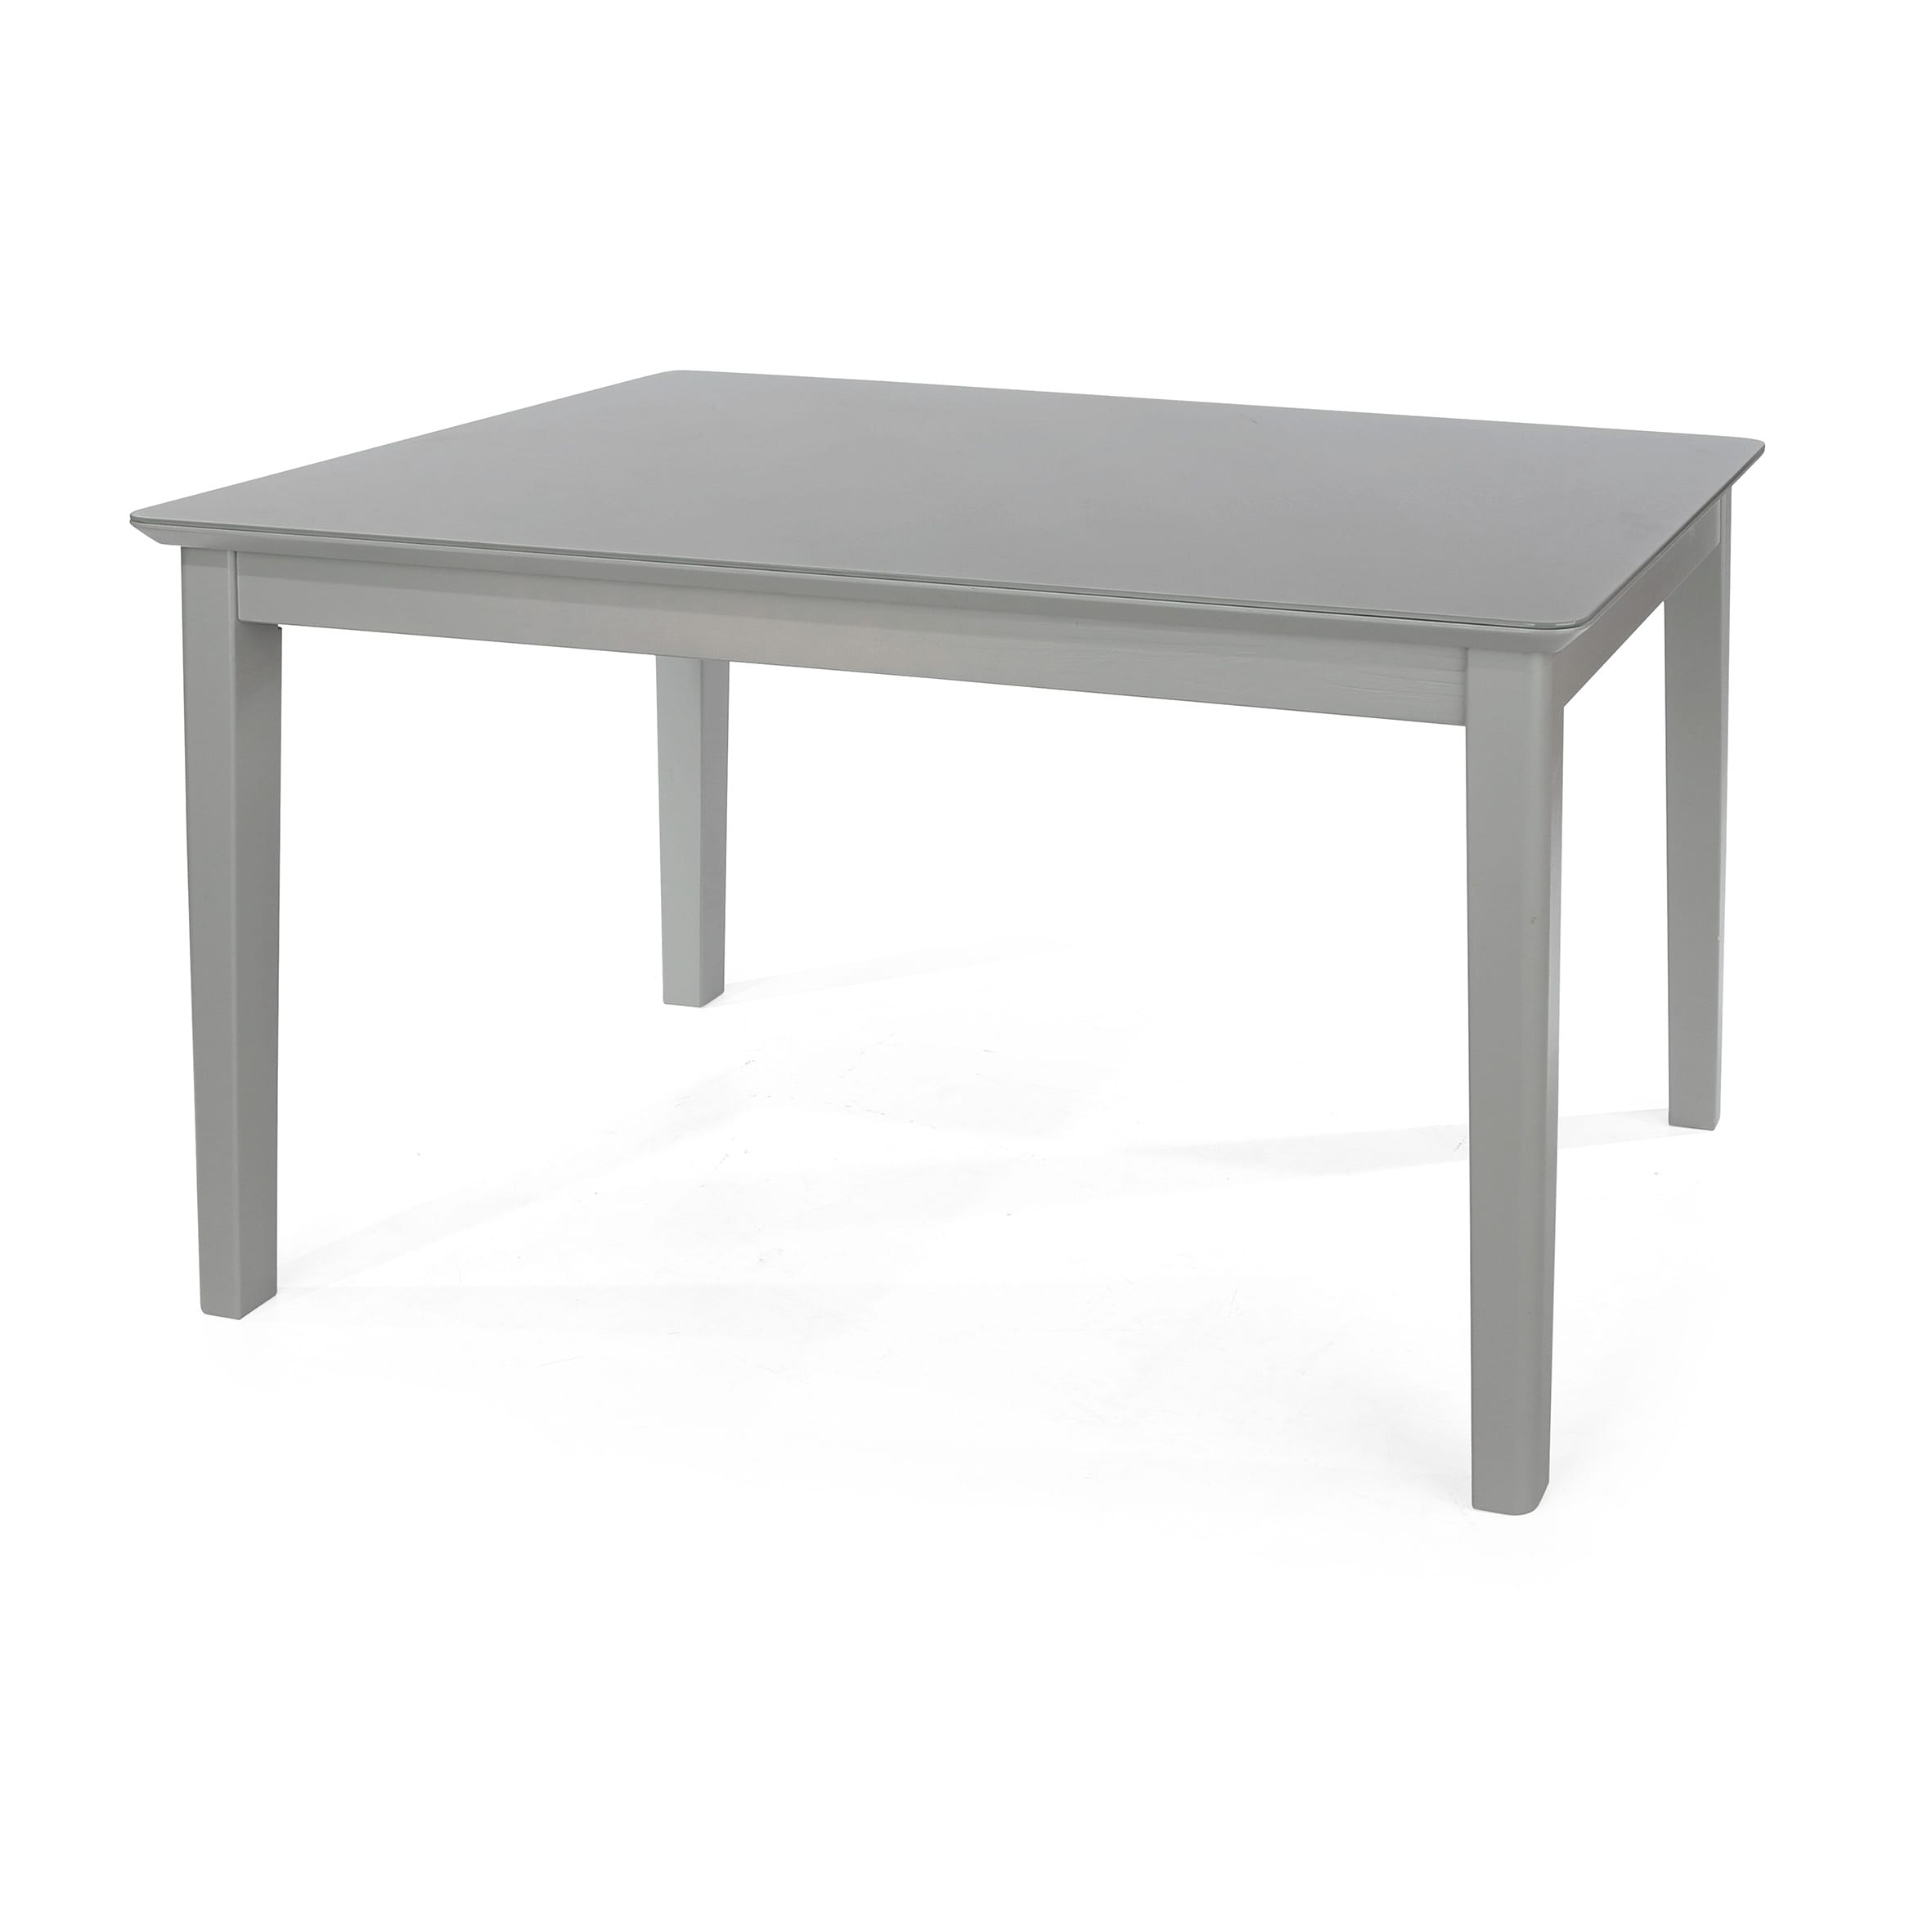 Epsom dining table